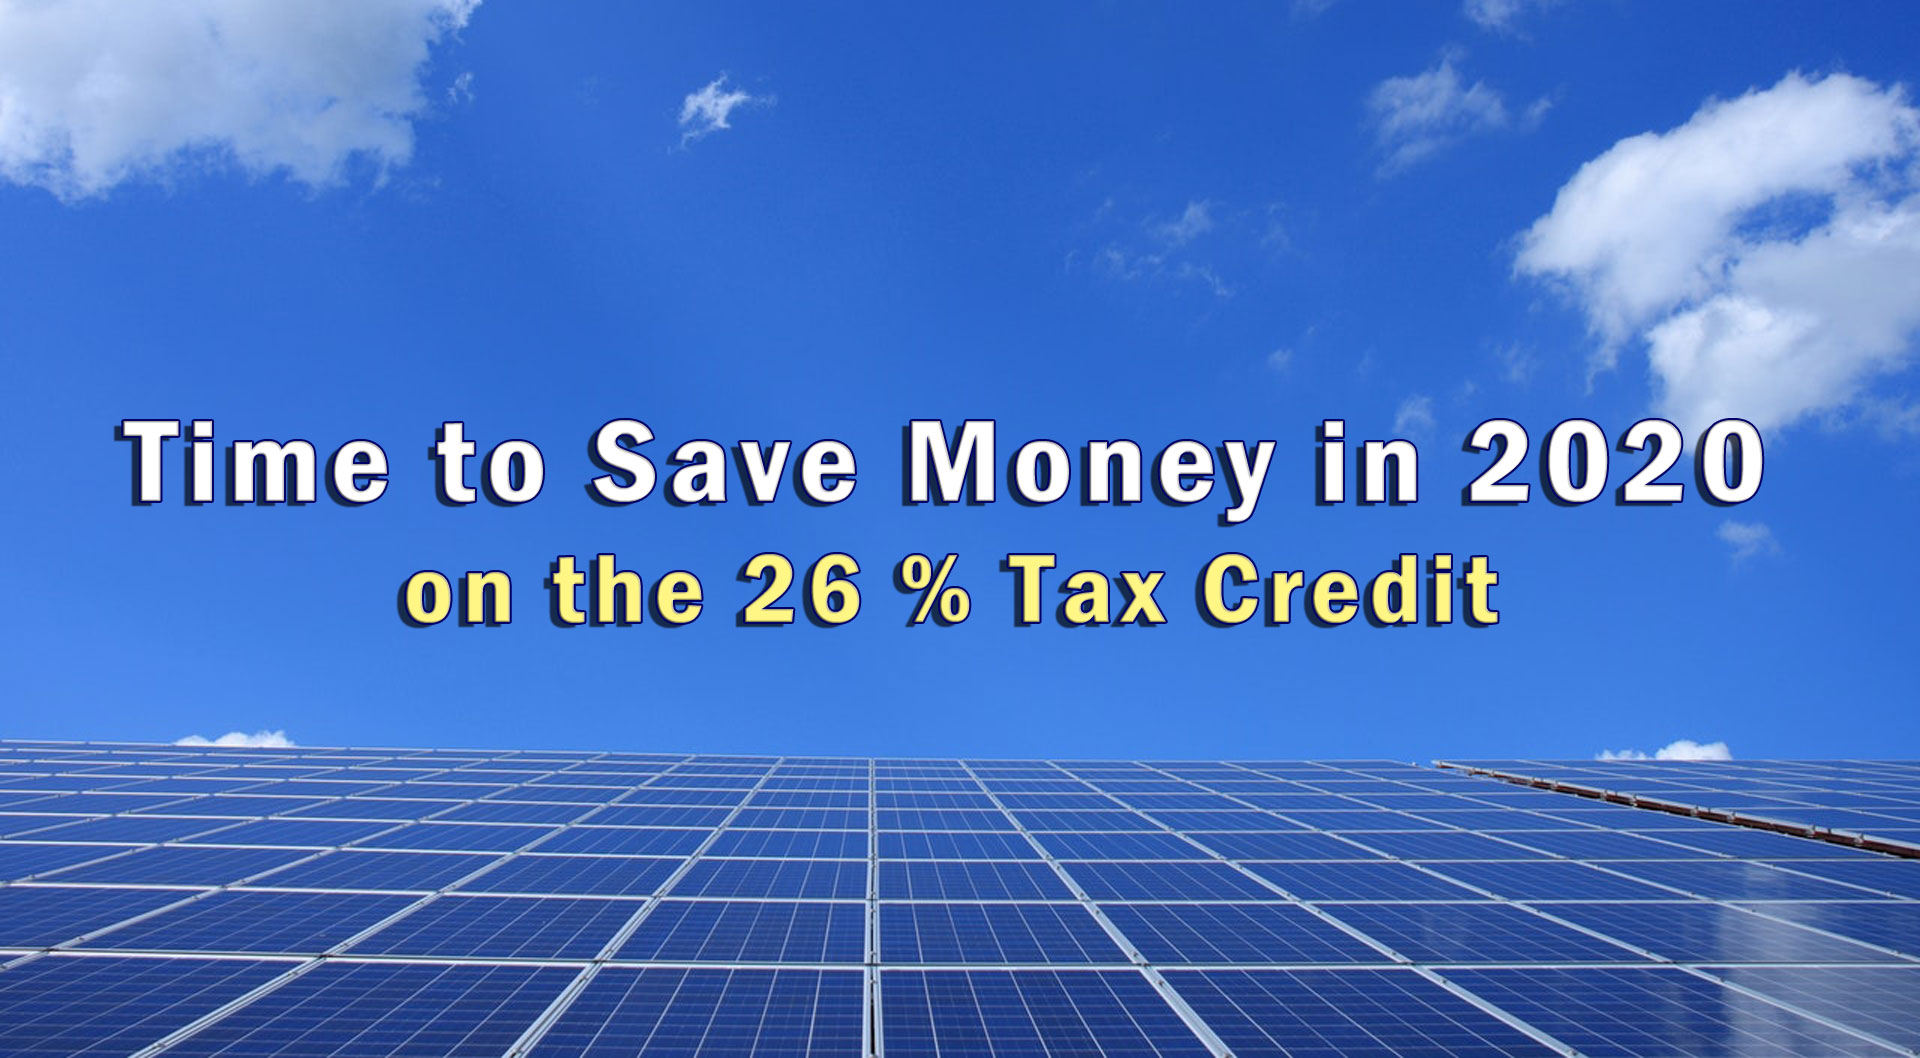 Time to Save Money in 2020 National Solar Energy